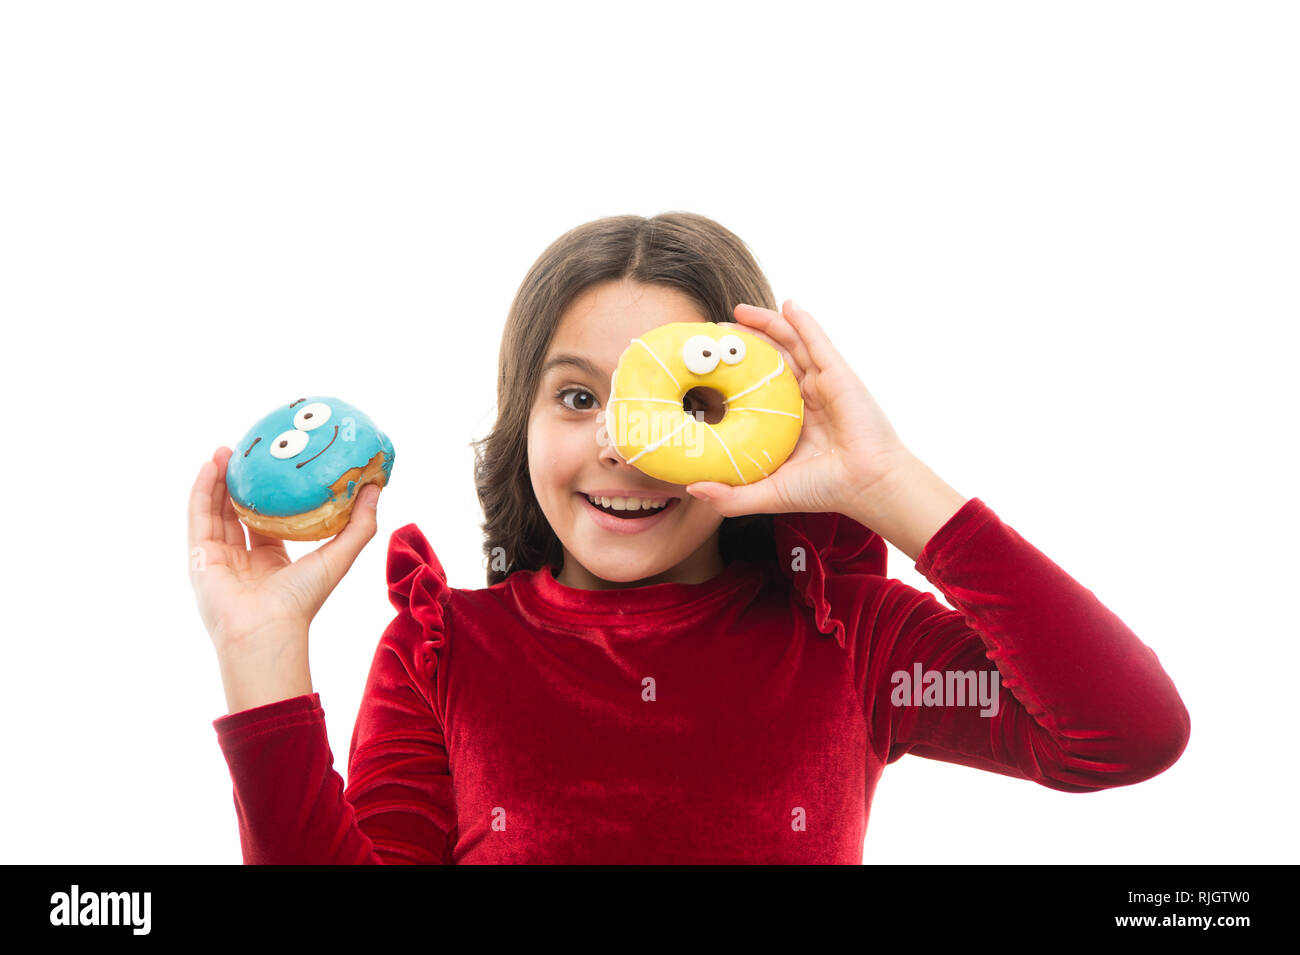 Girl hold sweet donut white background. Child hungry for sweet donut. Sugar levels and healthy nutrition. Nutritionist advice. Sweet obsession. Happy childhood and sweet treats. Breaking diet concept. - Stock Image